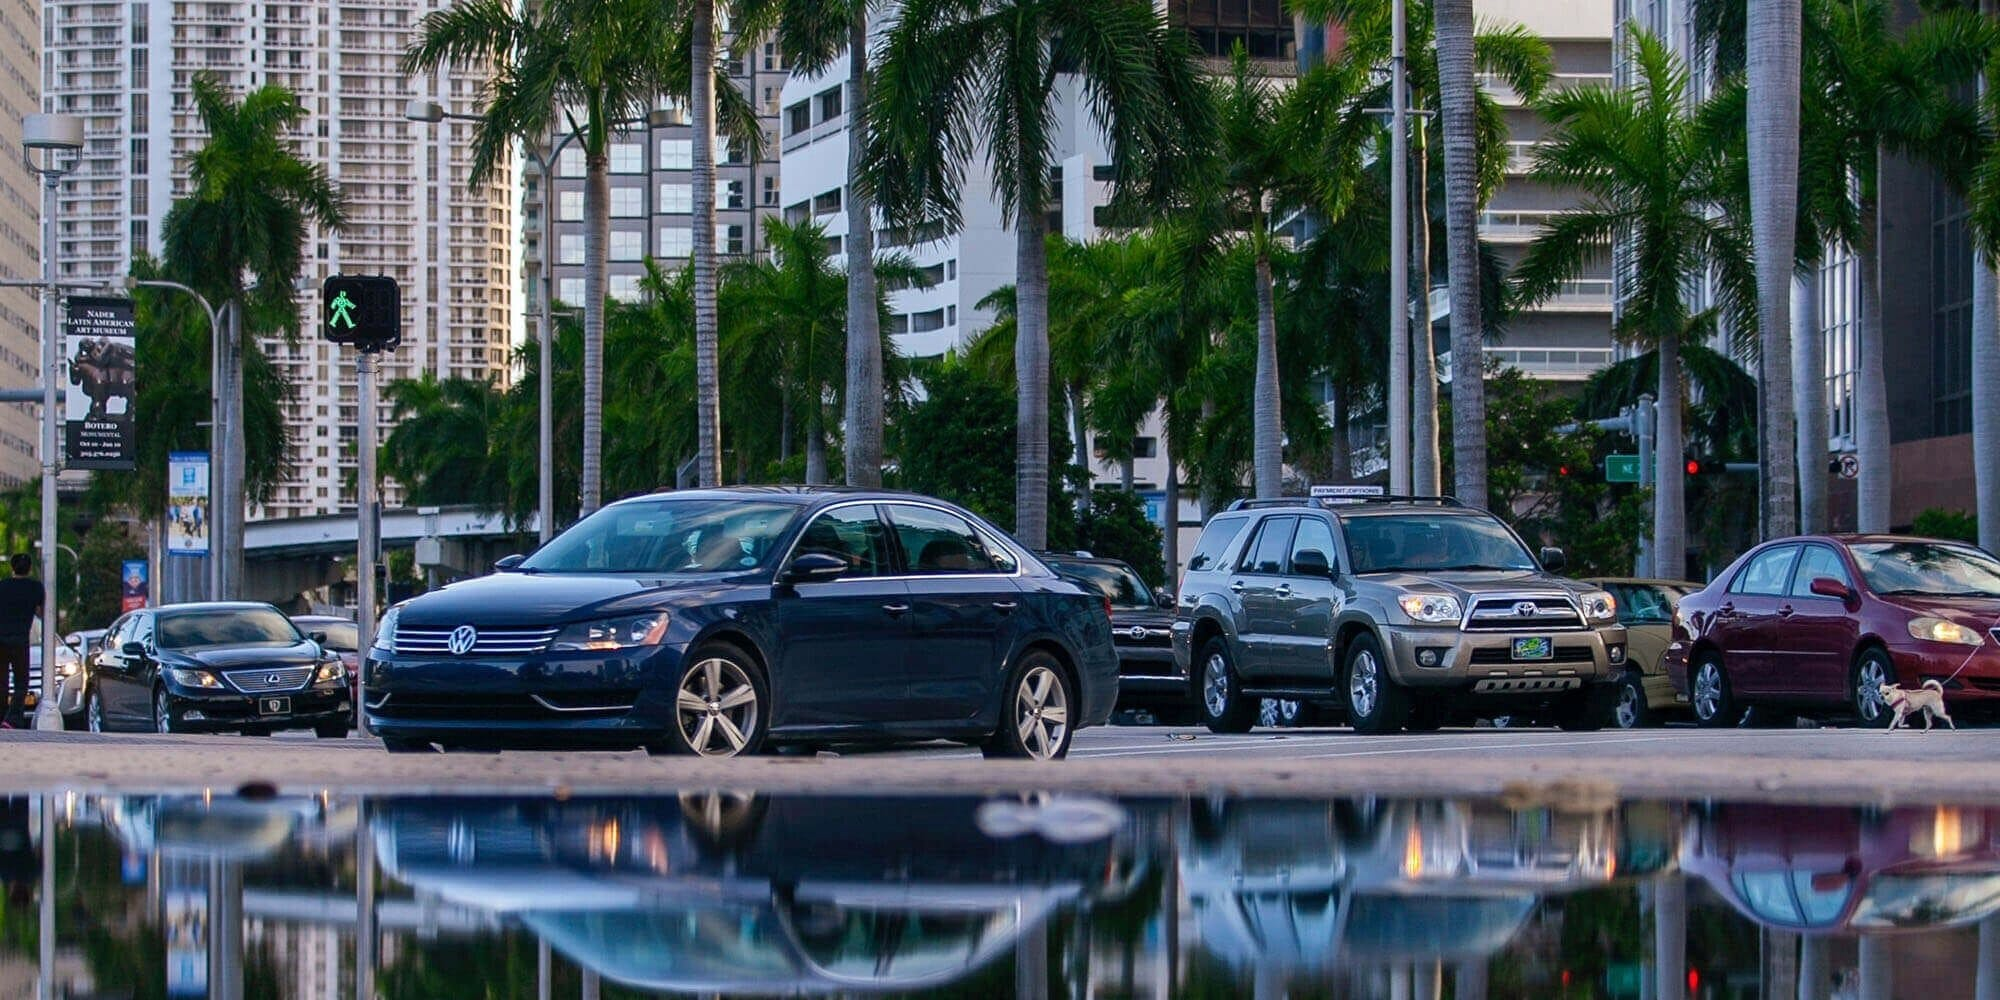 cars and their reflection in the water